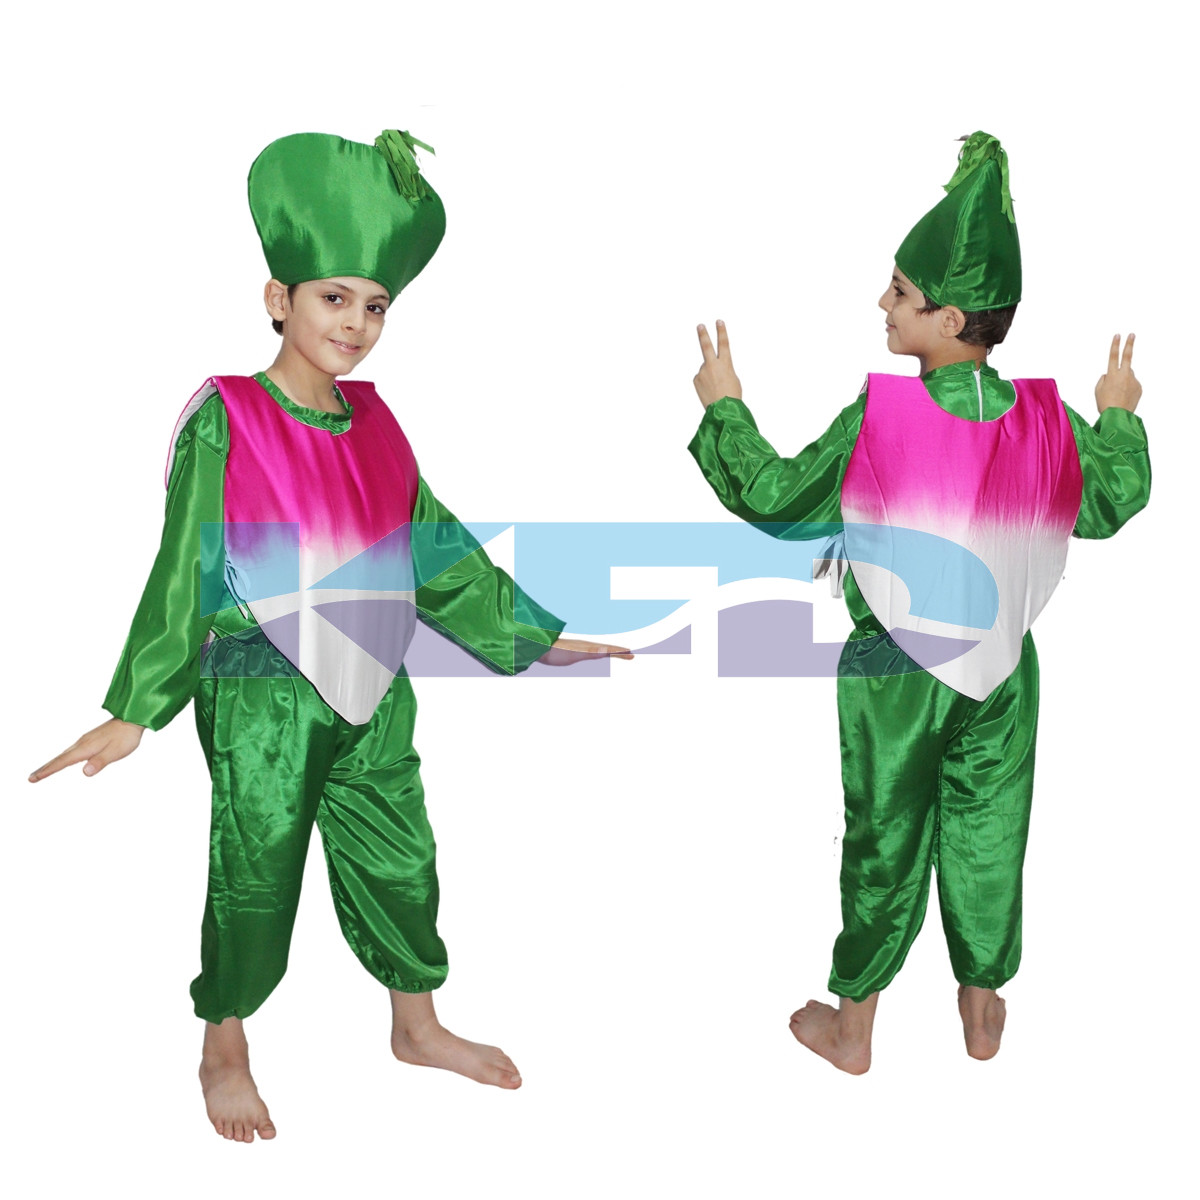 Turnip fancy dress for kids,Vegetables Costume for School Annual function/Theme Party/Competition/Stage Shows Dress